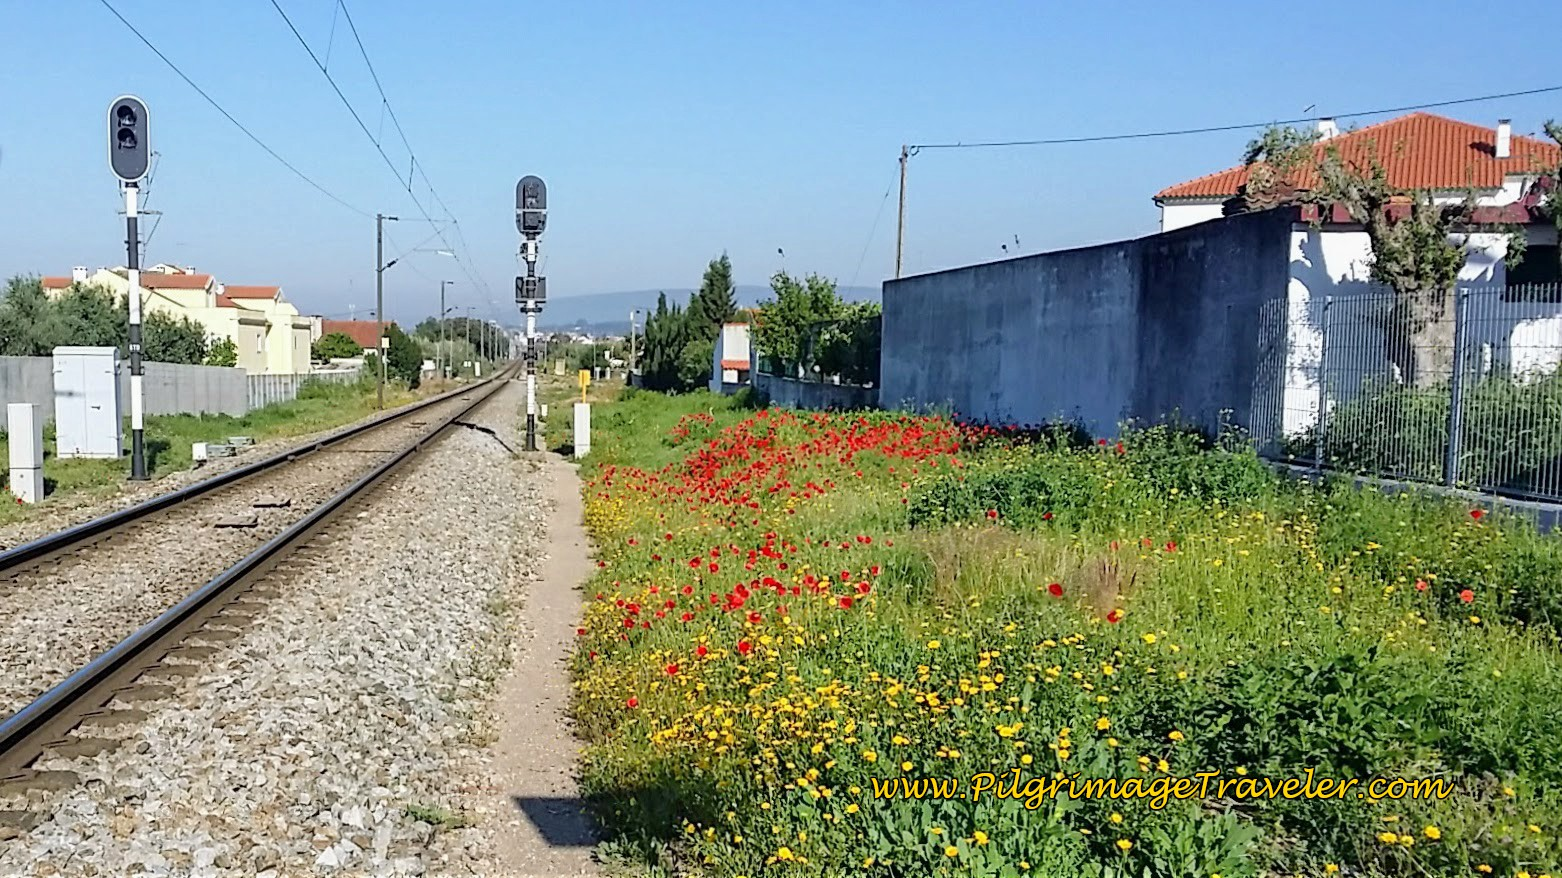 Looking Westward Down the Tracks on Day Five, Camino Portugués